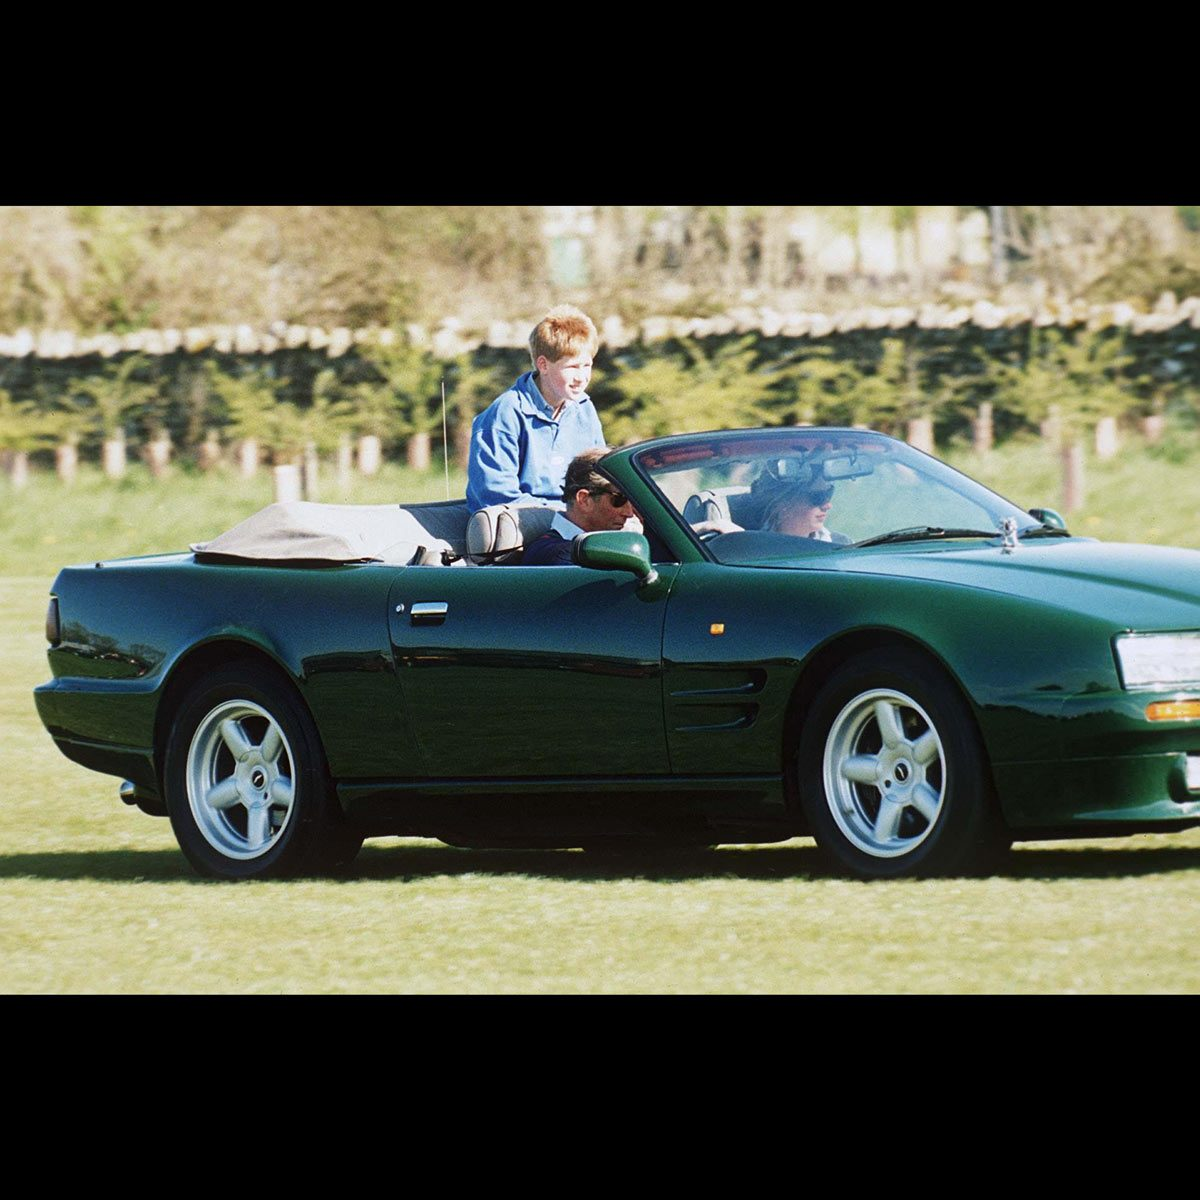 Prince Charles driving Aston Martin convertible car with Tiggy Legge Bourke and Prince Harry riding in the back